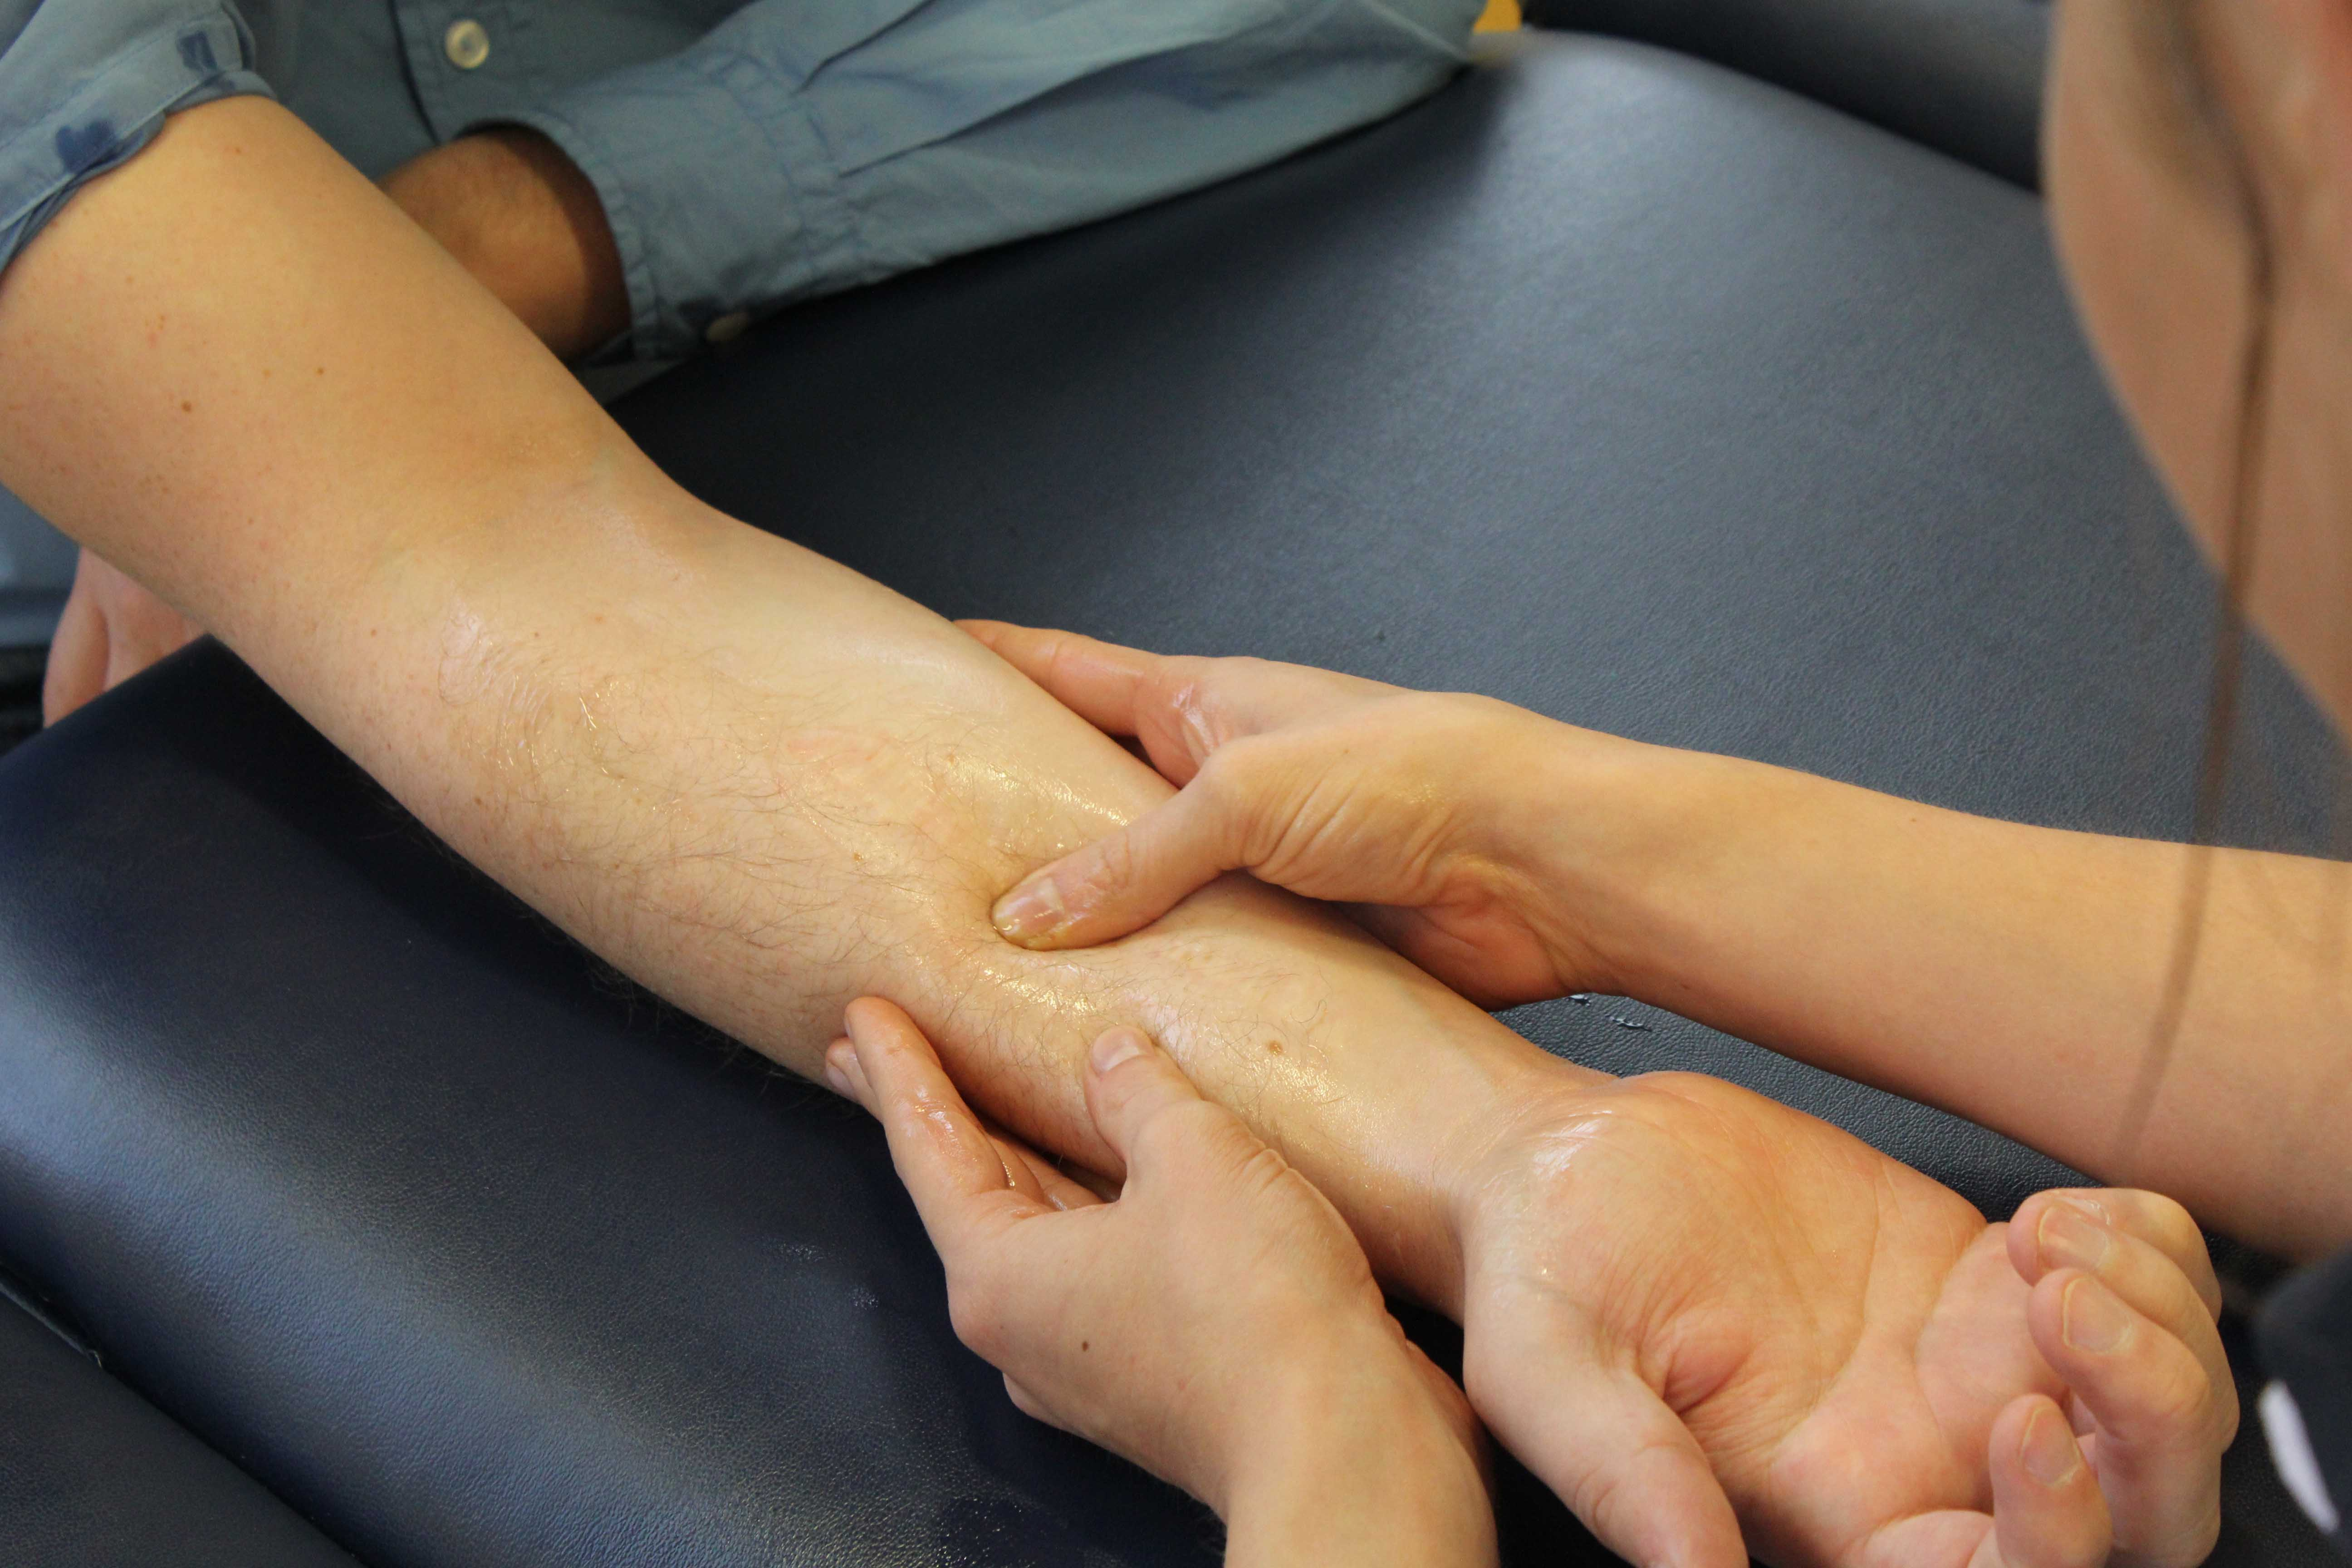 Soft tissue massage of the forearm focusing on flexor muscles